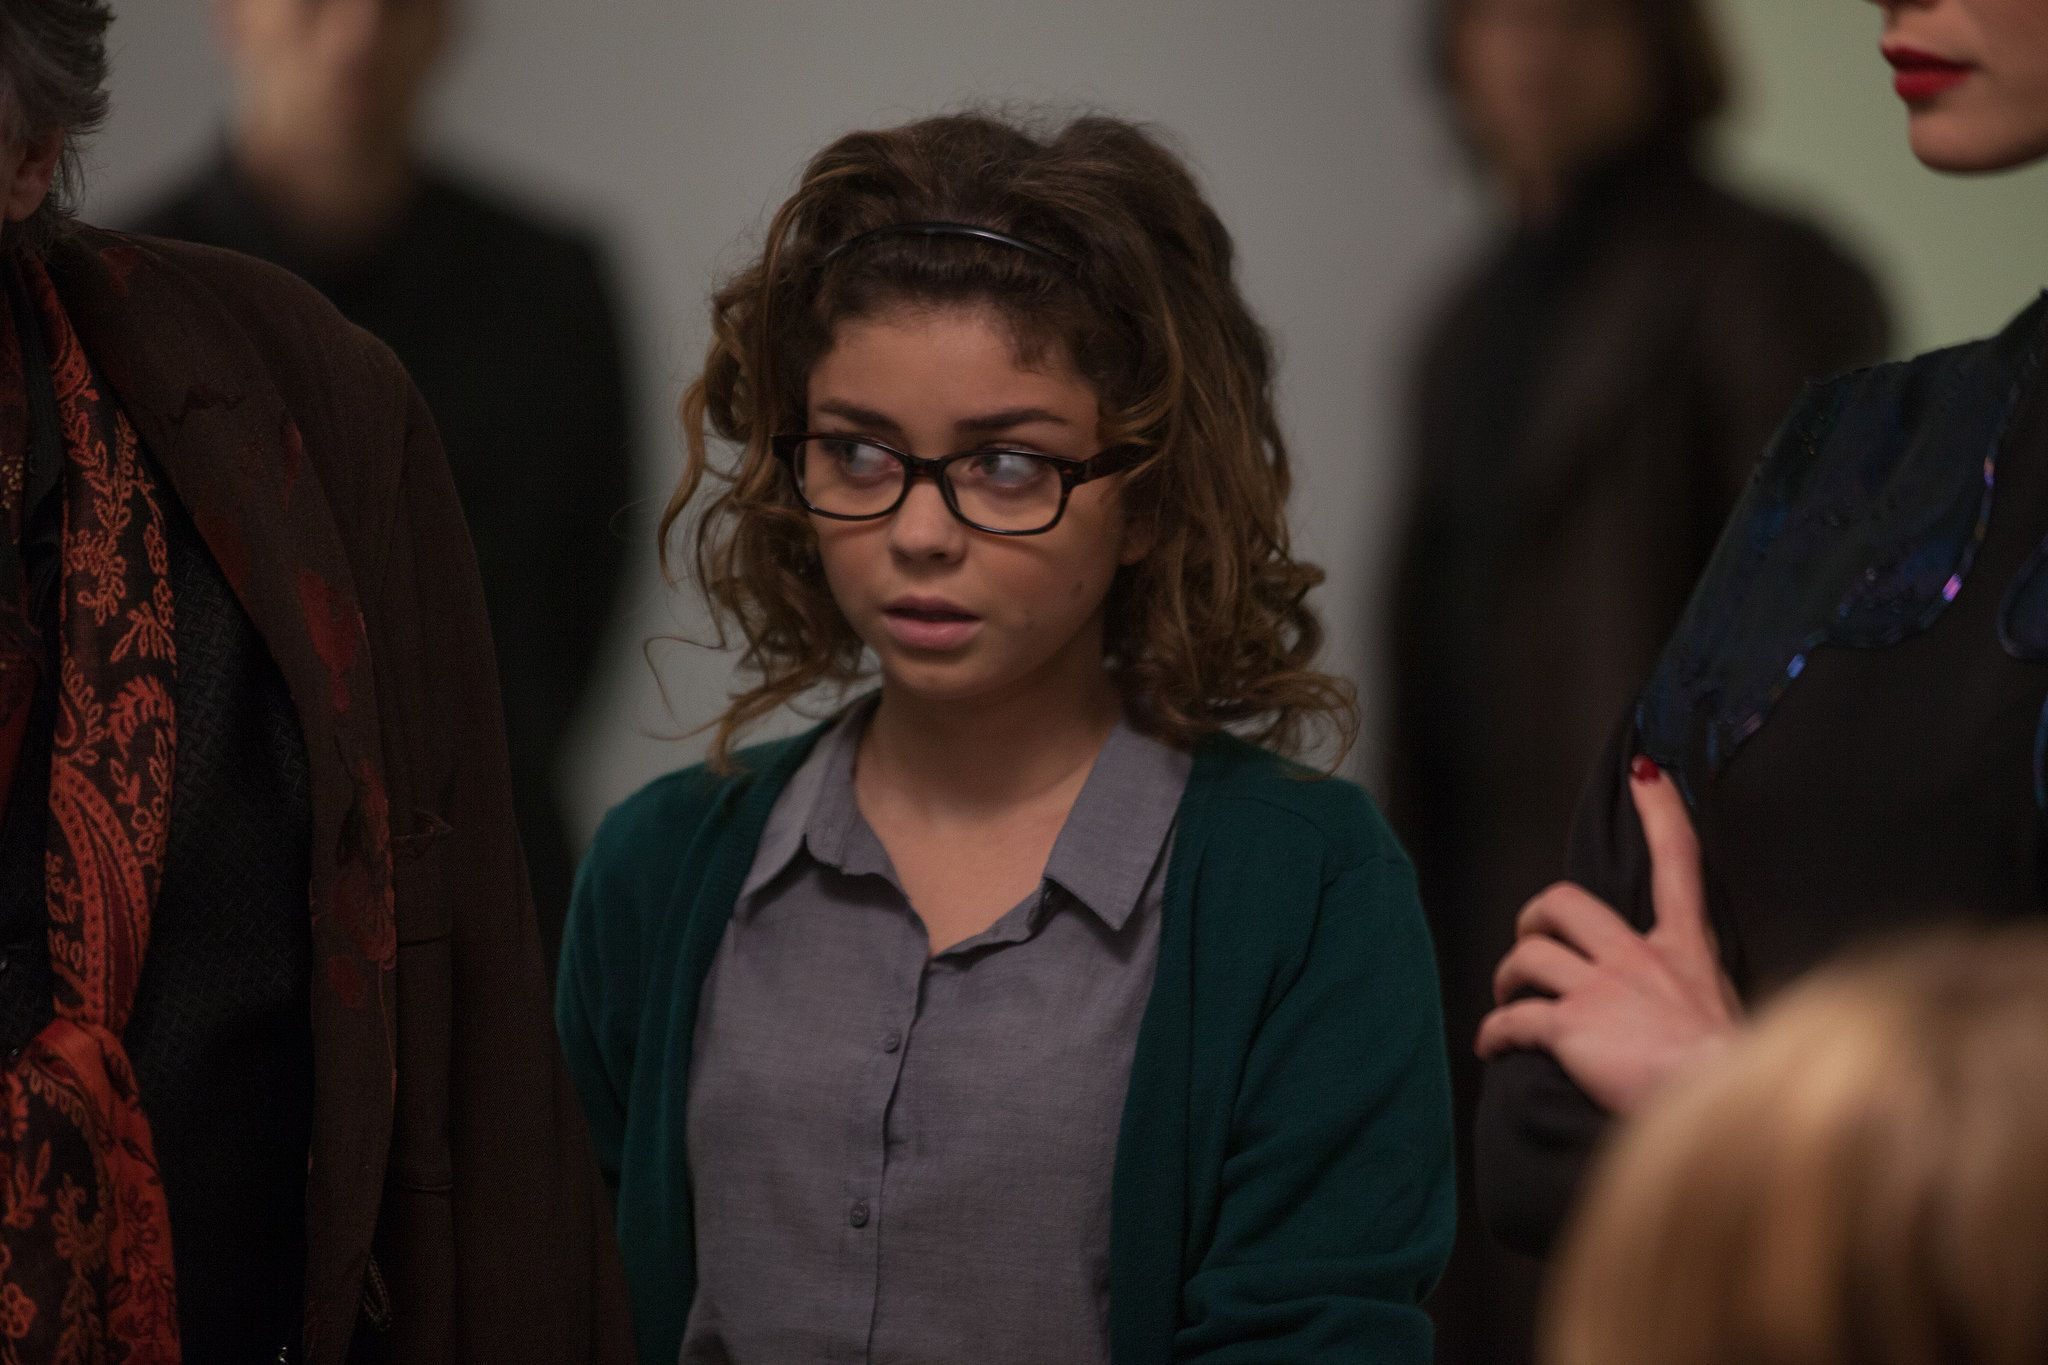 Sarah Hyland Claps Back After Being Accused Of Wearing Glasses To Look Quirky Fashion Eye Glasses Chic Glasses Stylish Glasses